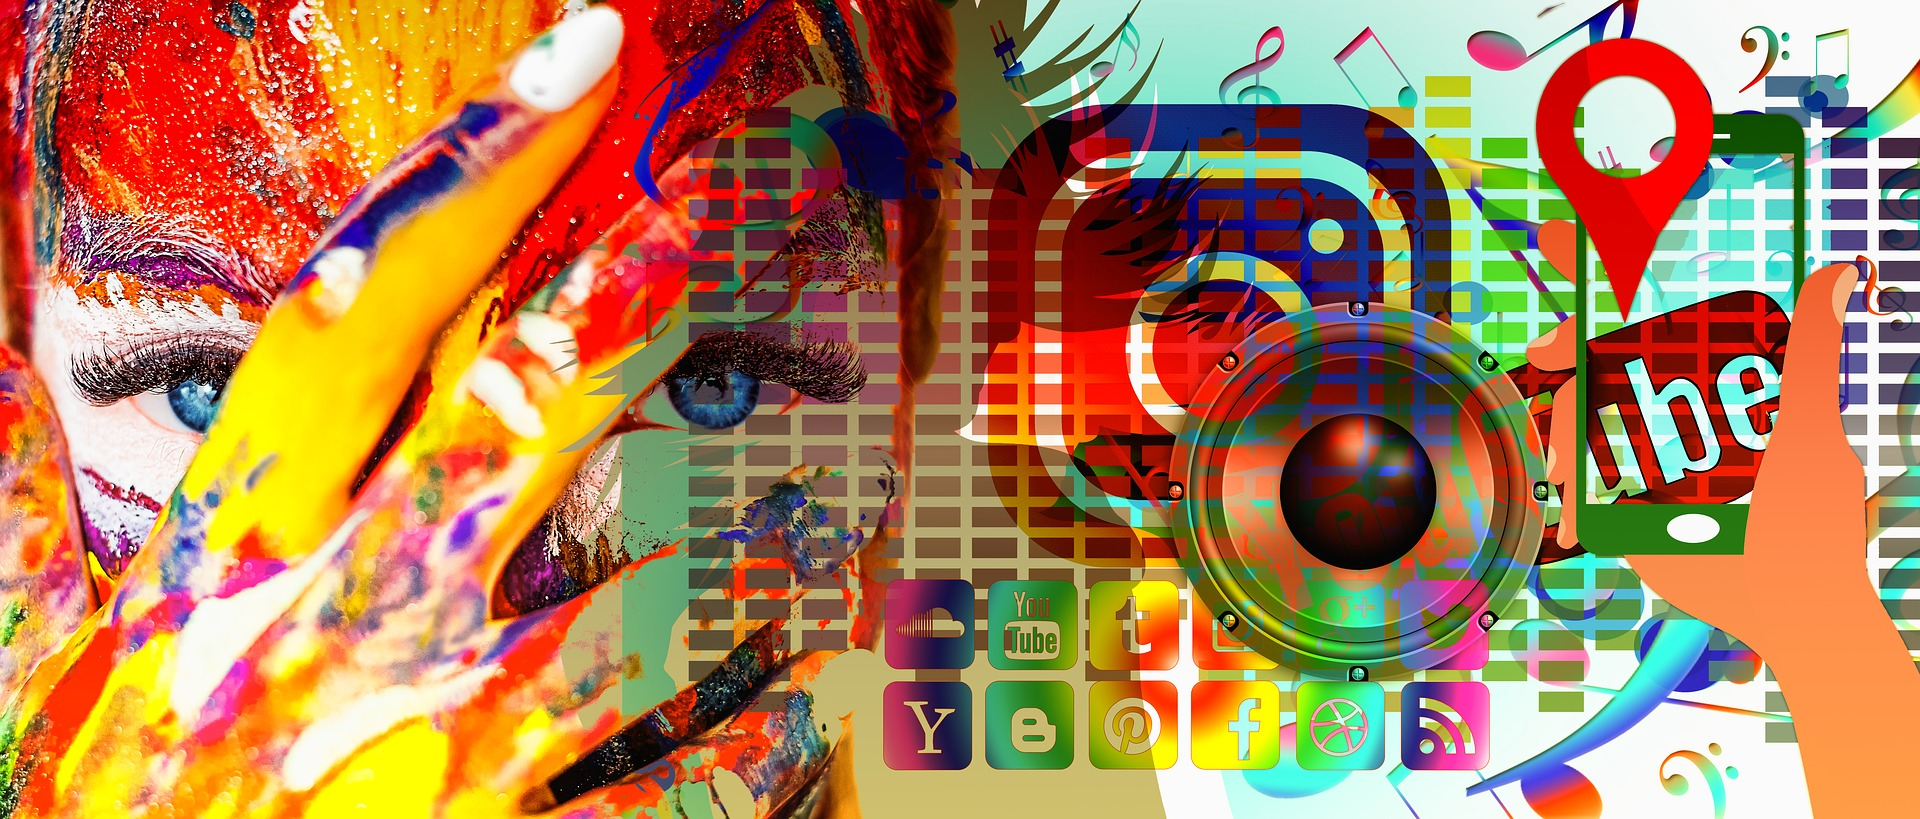 How Using Social Media Affects Teenagers - Free Teens Youth - Changing Minds, Transforming Lives